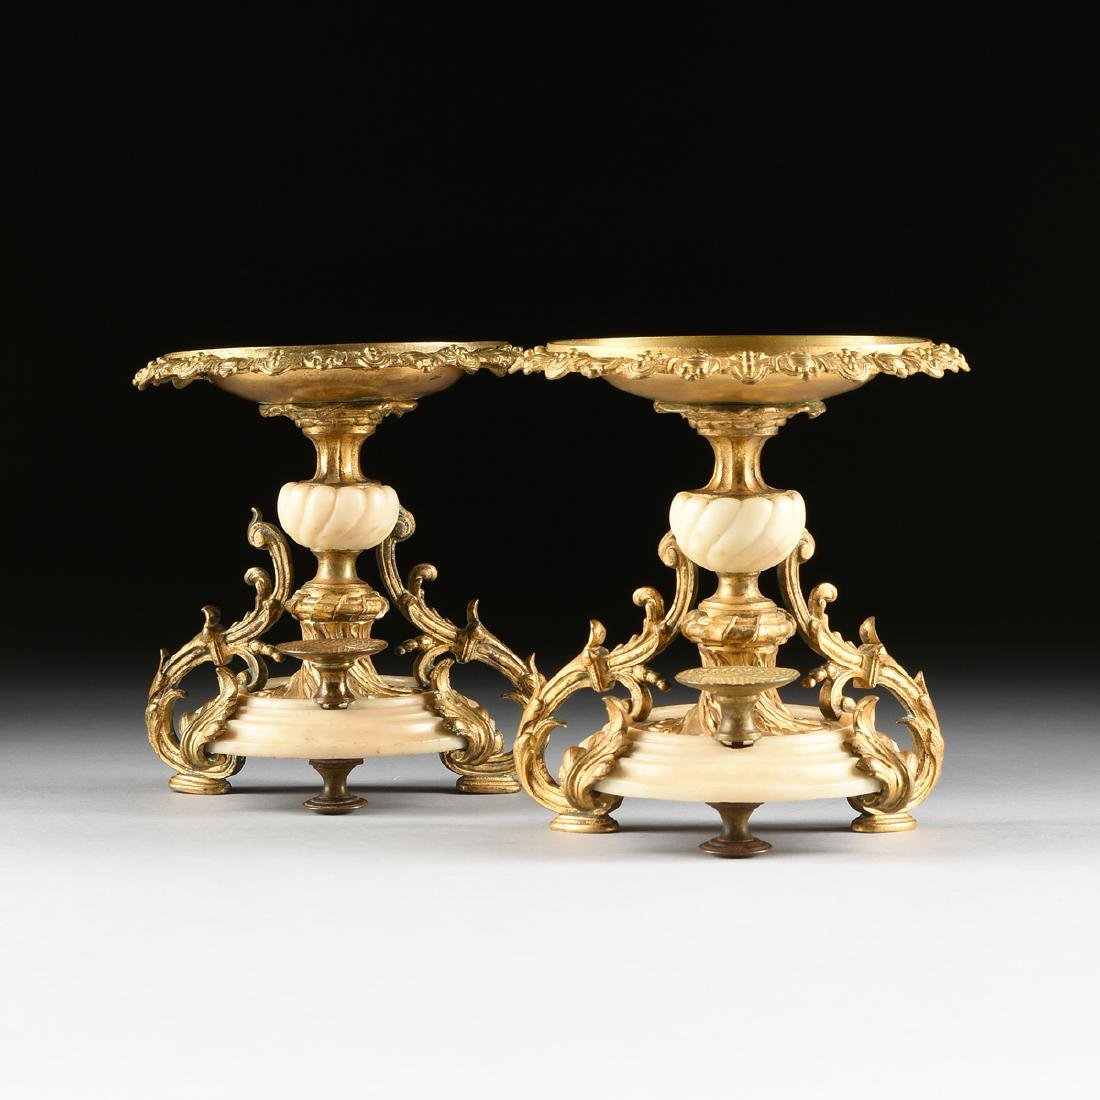 A PAIR OF CONTINENTAL GILT BRONZE AND WHITE MARBLE